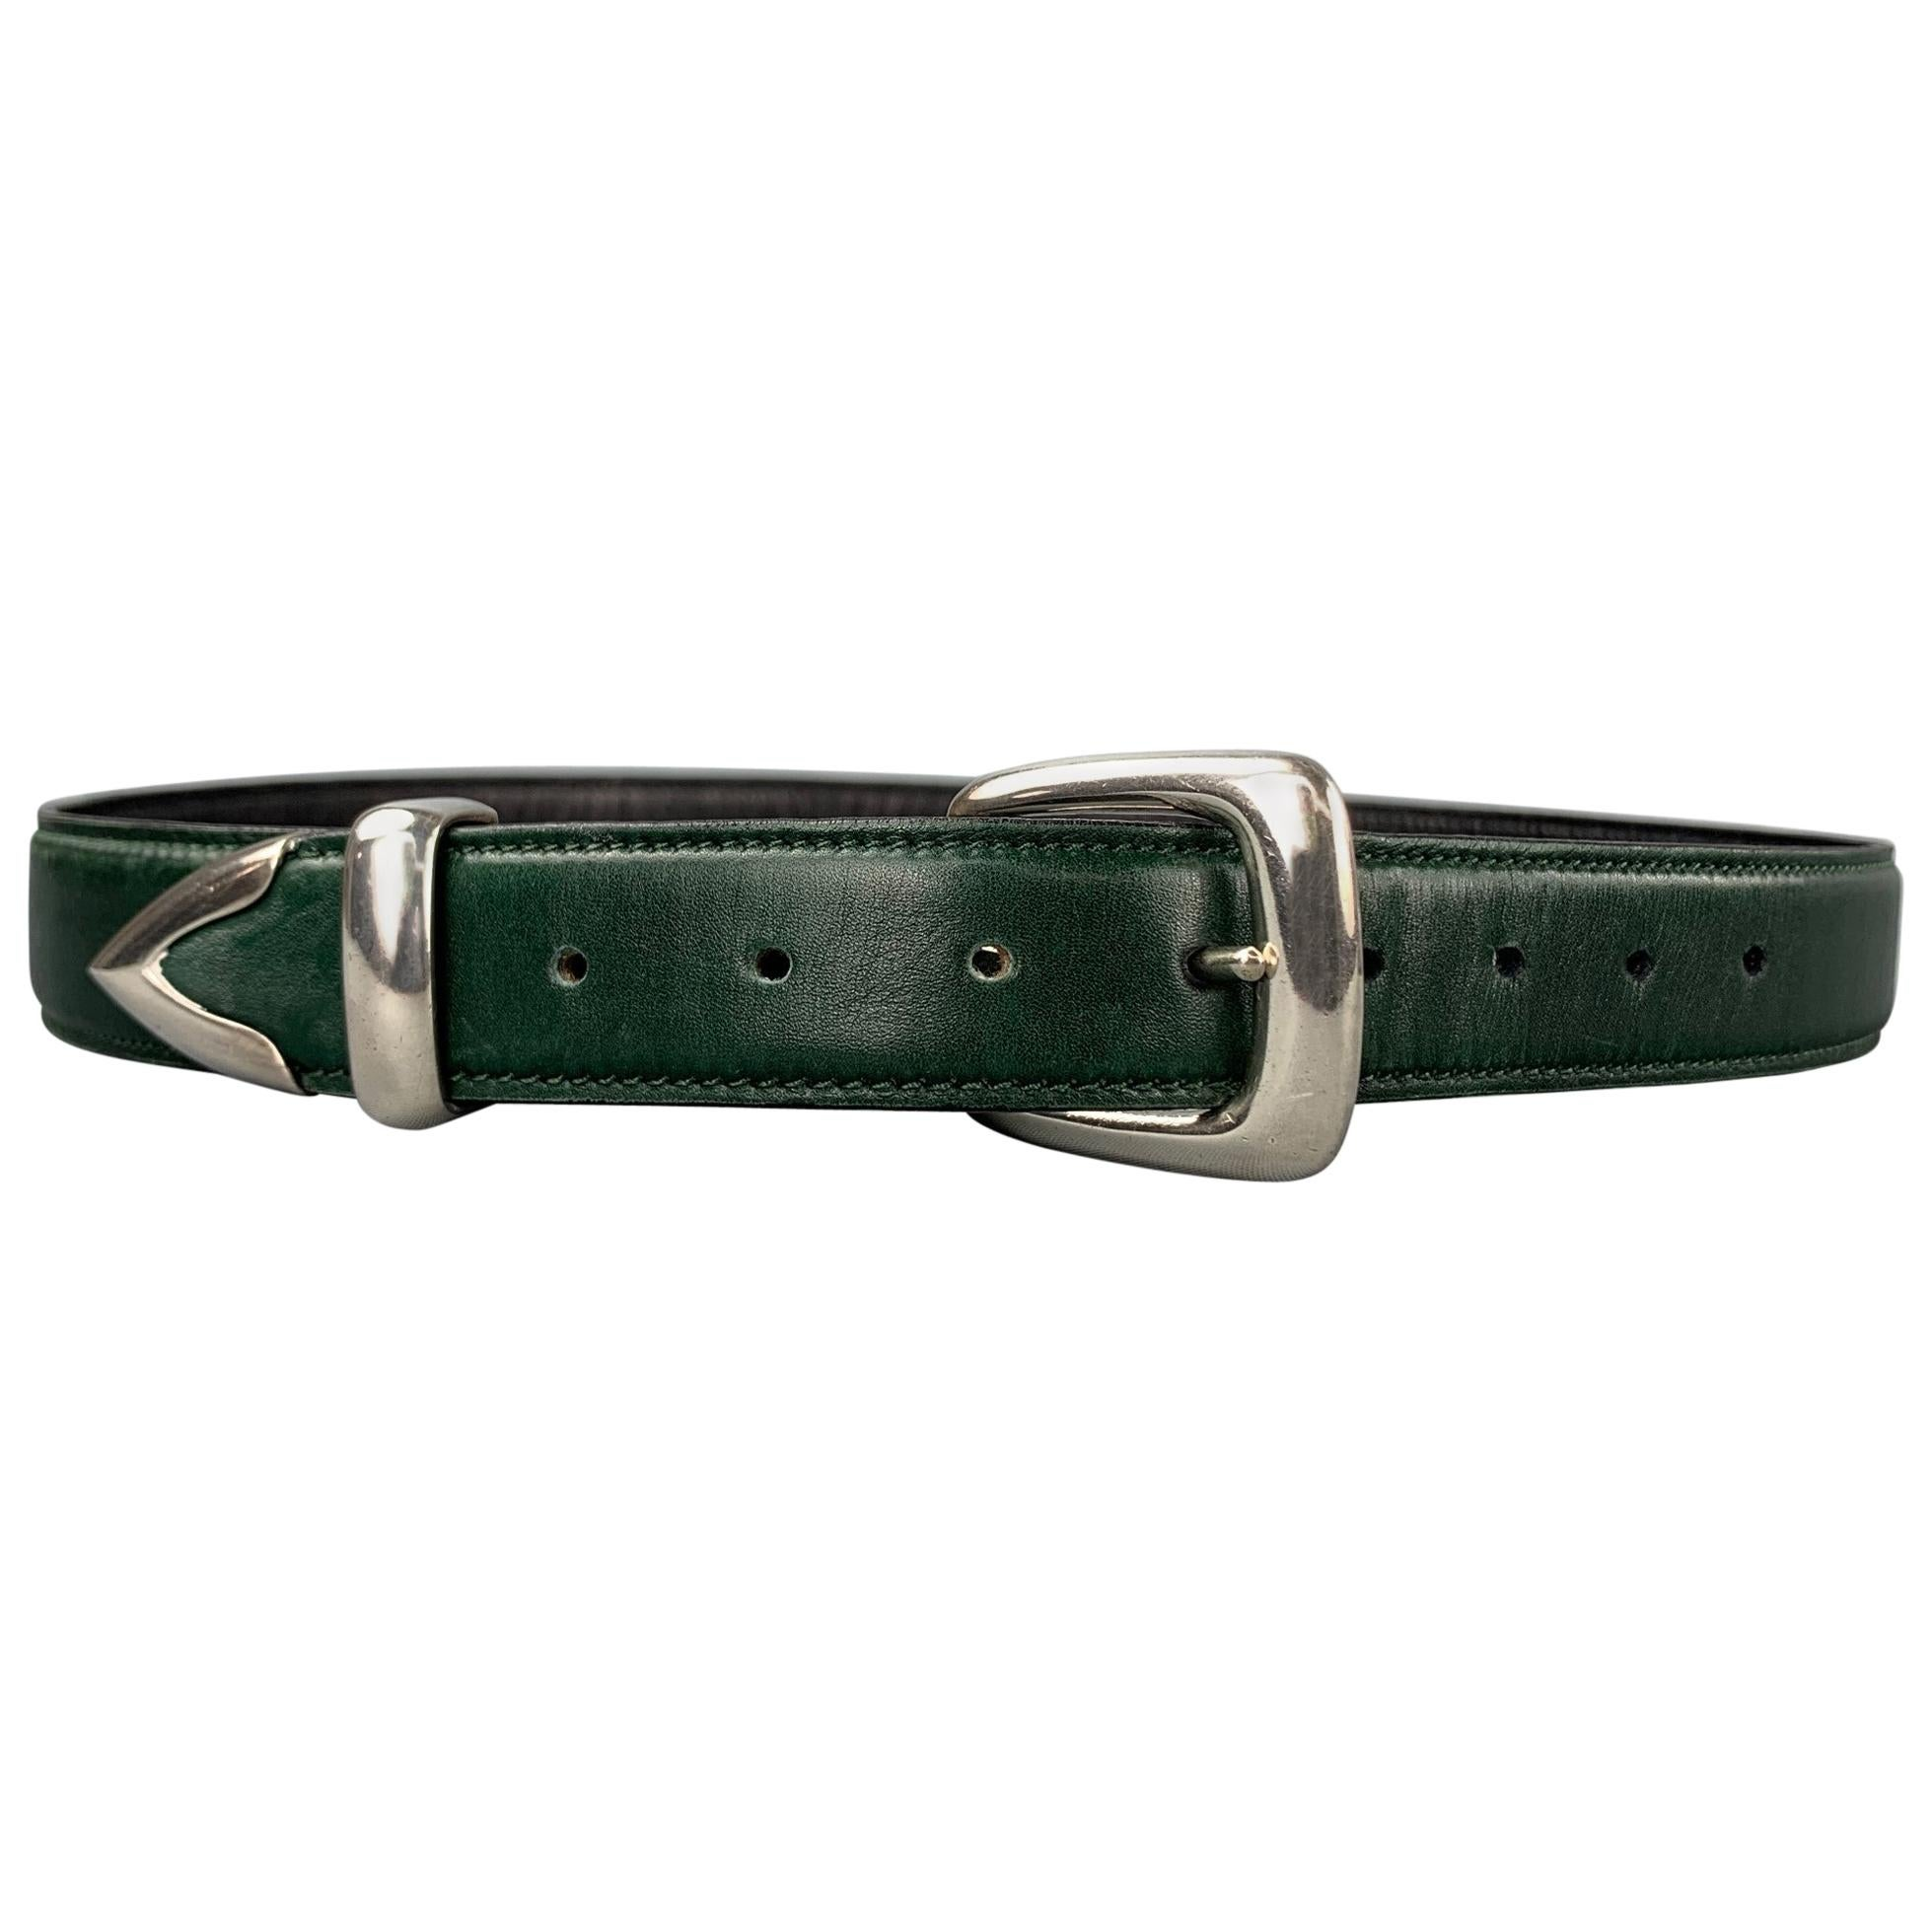 DOUGLAS MAGNUS Size S Dark Green Sterling Silver Leather Heartline Belt